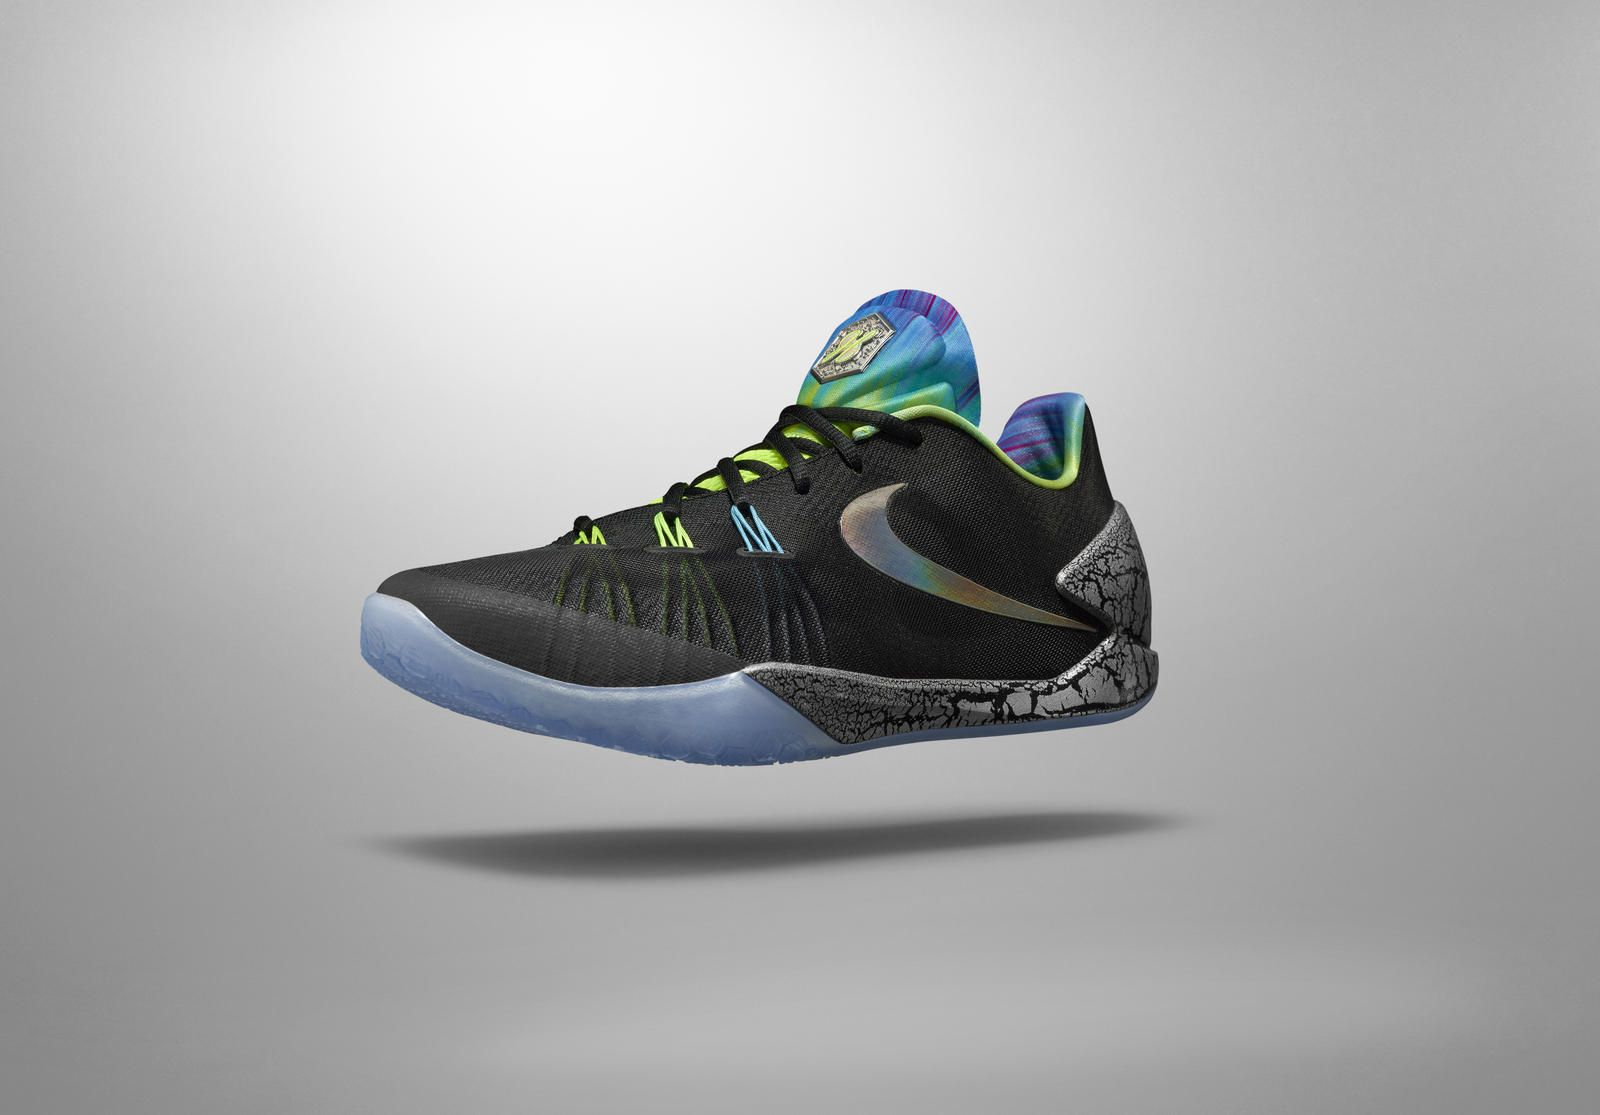 the latest 39528 a6b67 Nike News - Introducing the Nike Hyperchase Basketball Shoe for Playmakers  like James Harden